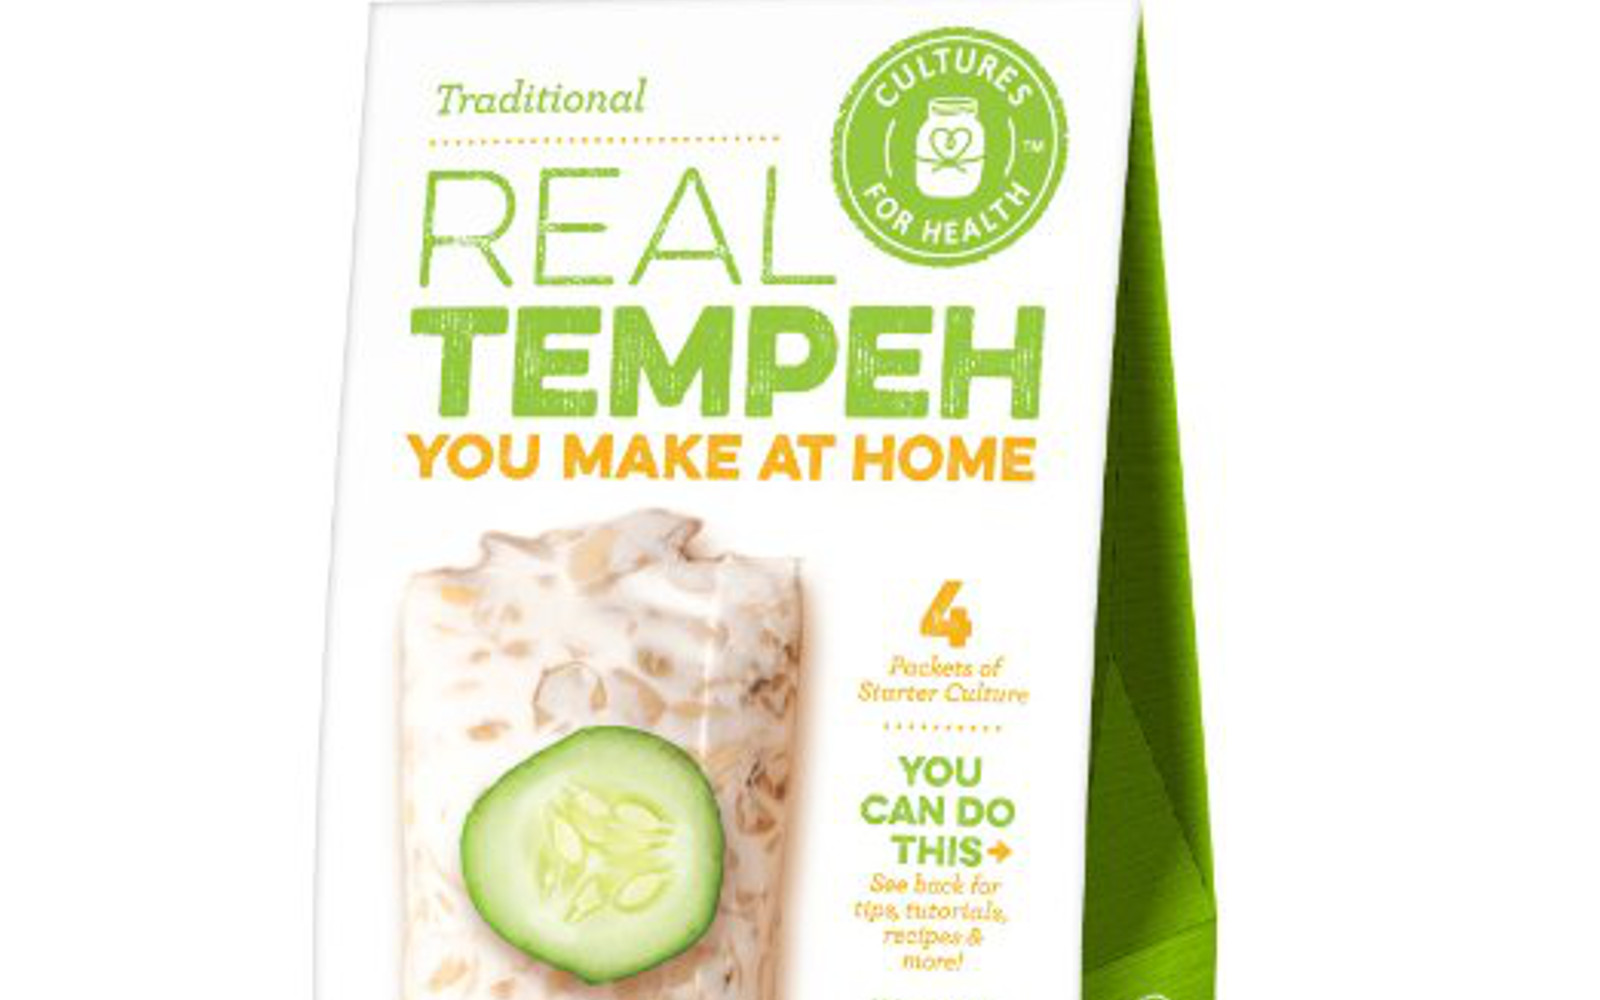 Real Tempeh You Make at Home